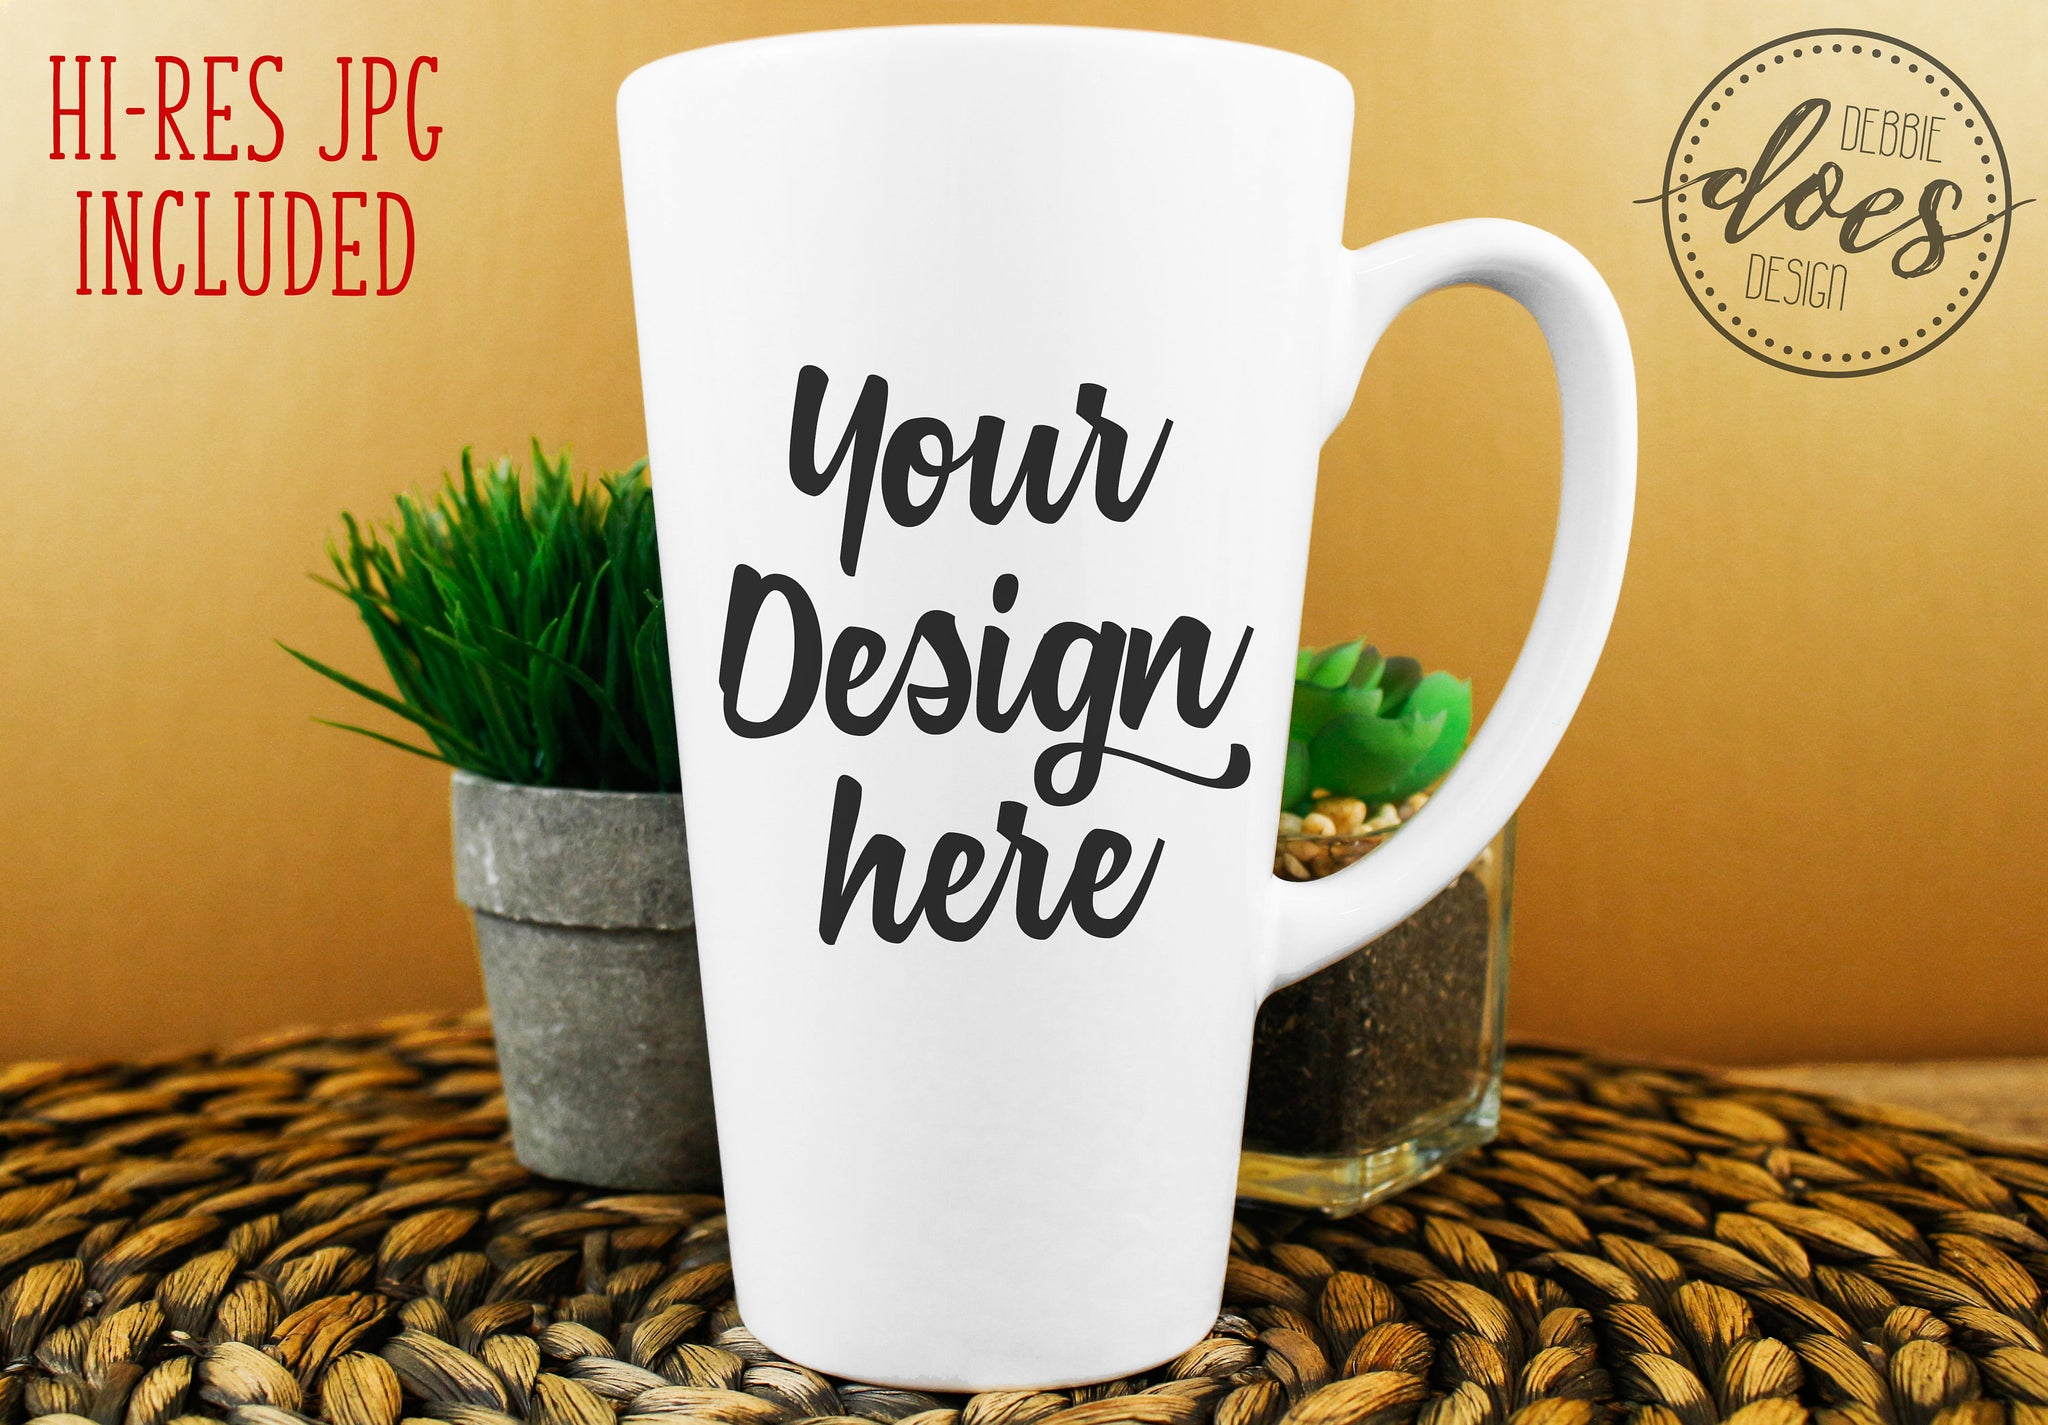 White Latte Mug Mockup | White Mug Mock-Up | Blank Mock Up Photo Download